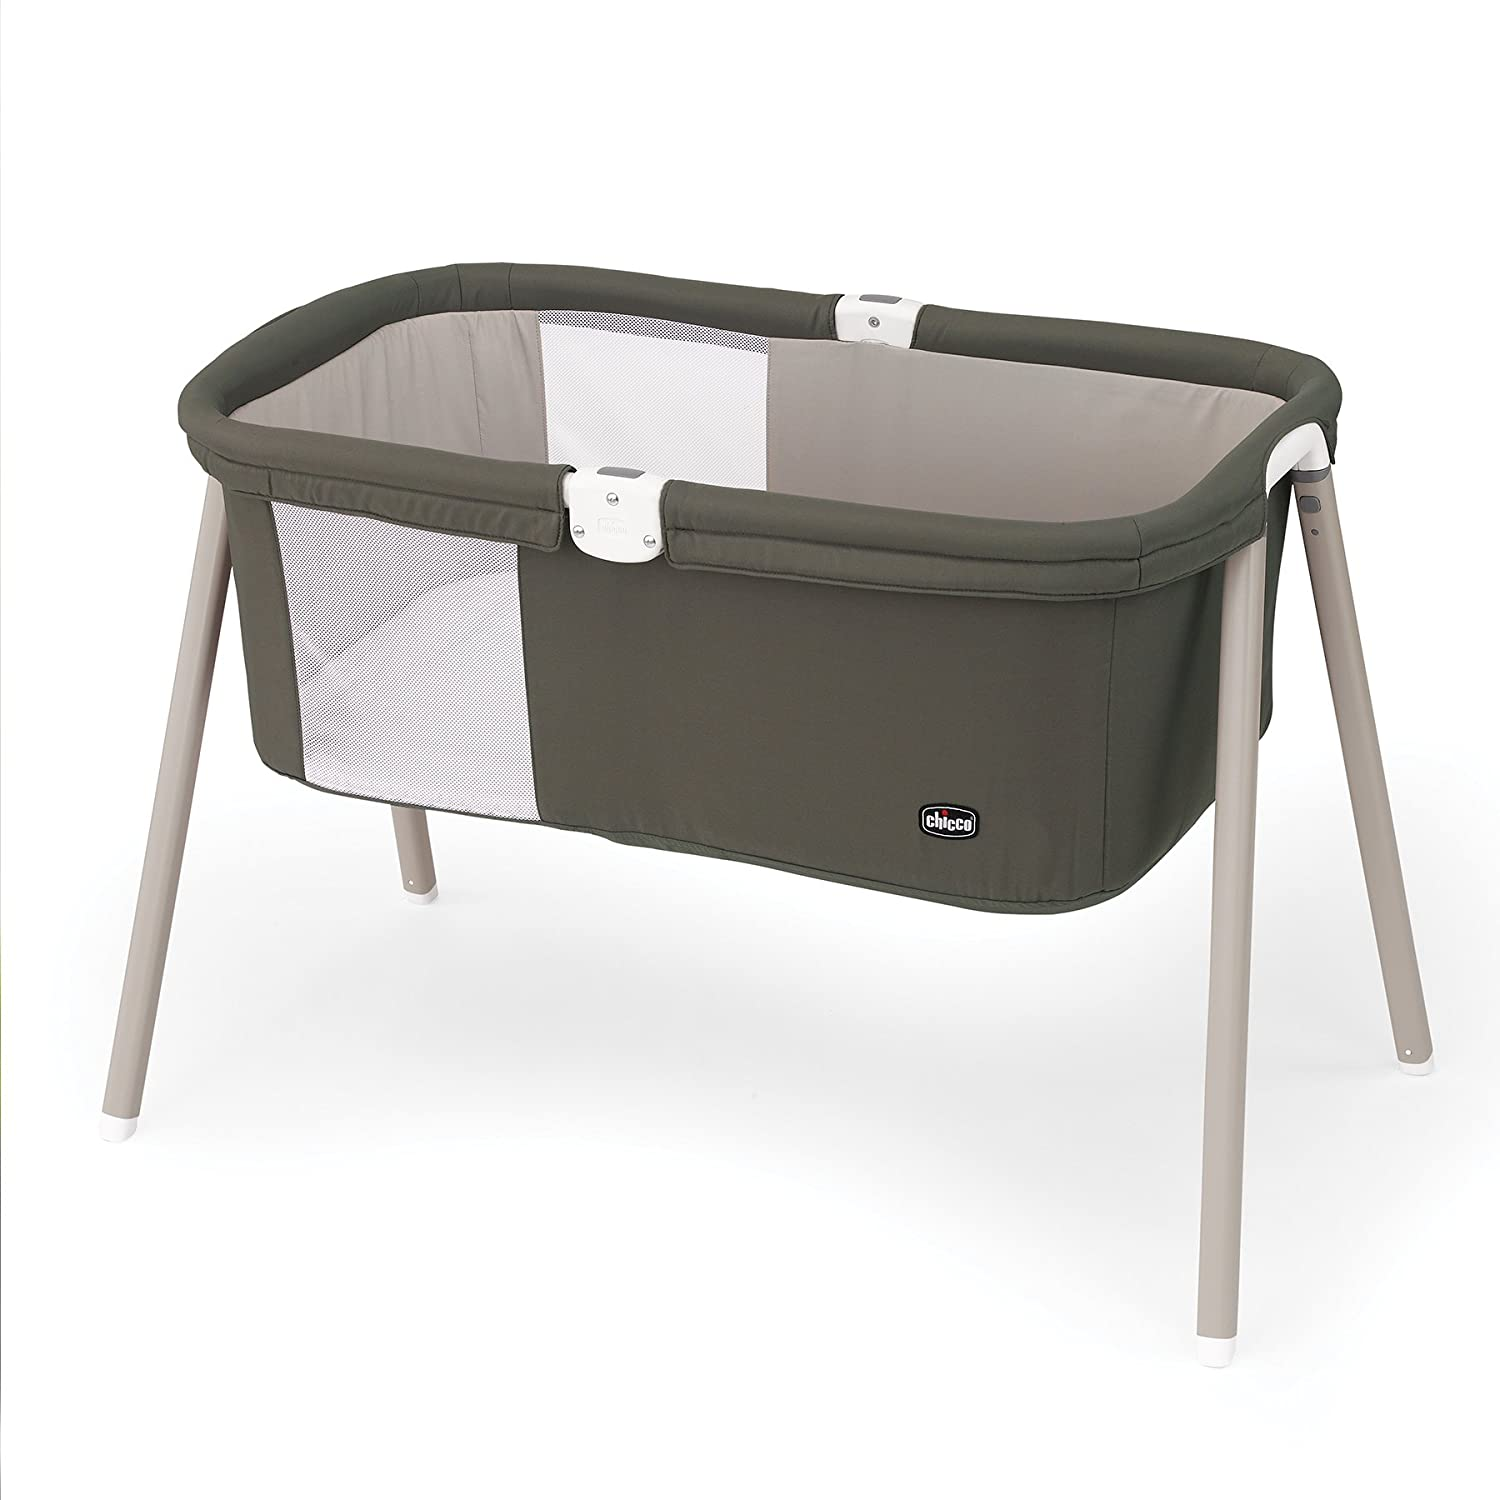 Chicco Lullago Portable Bassinet, Chestnut 7904454